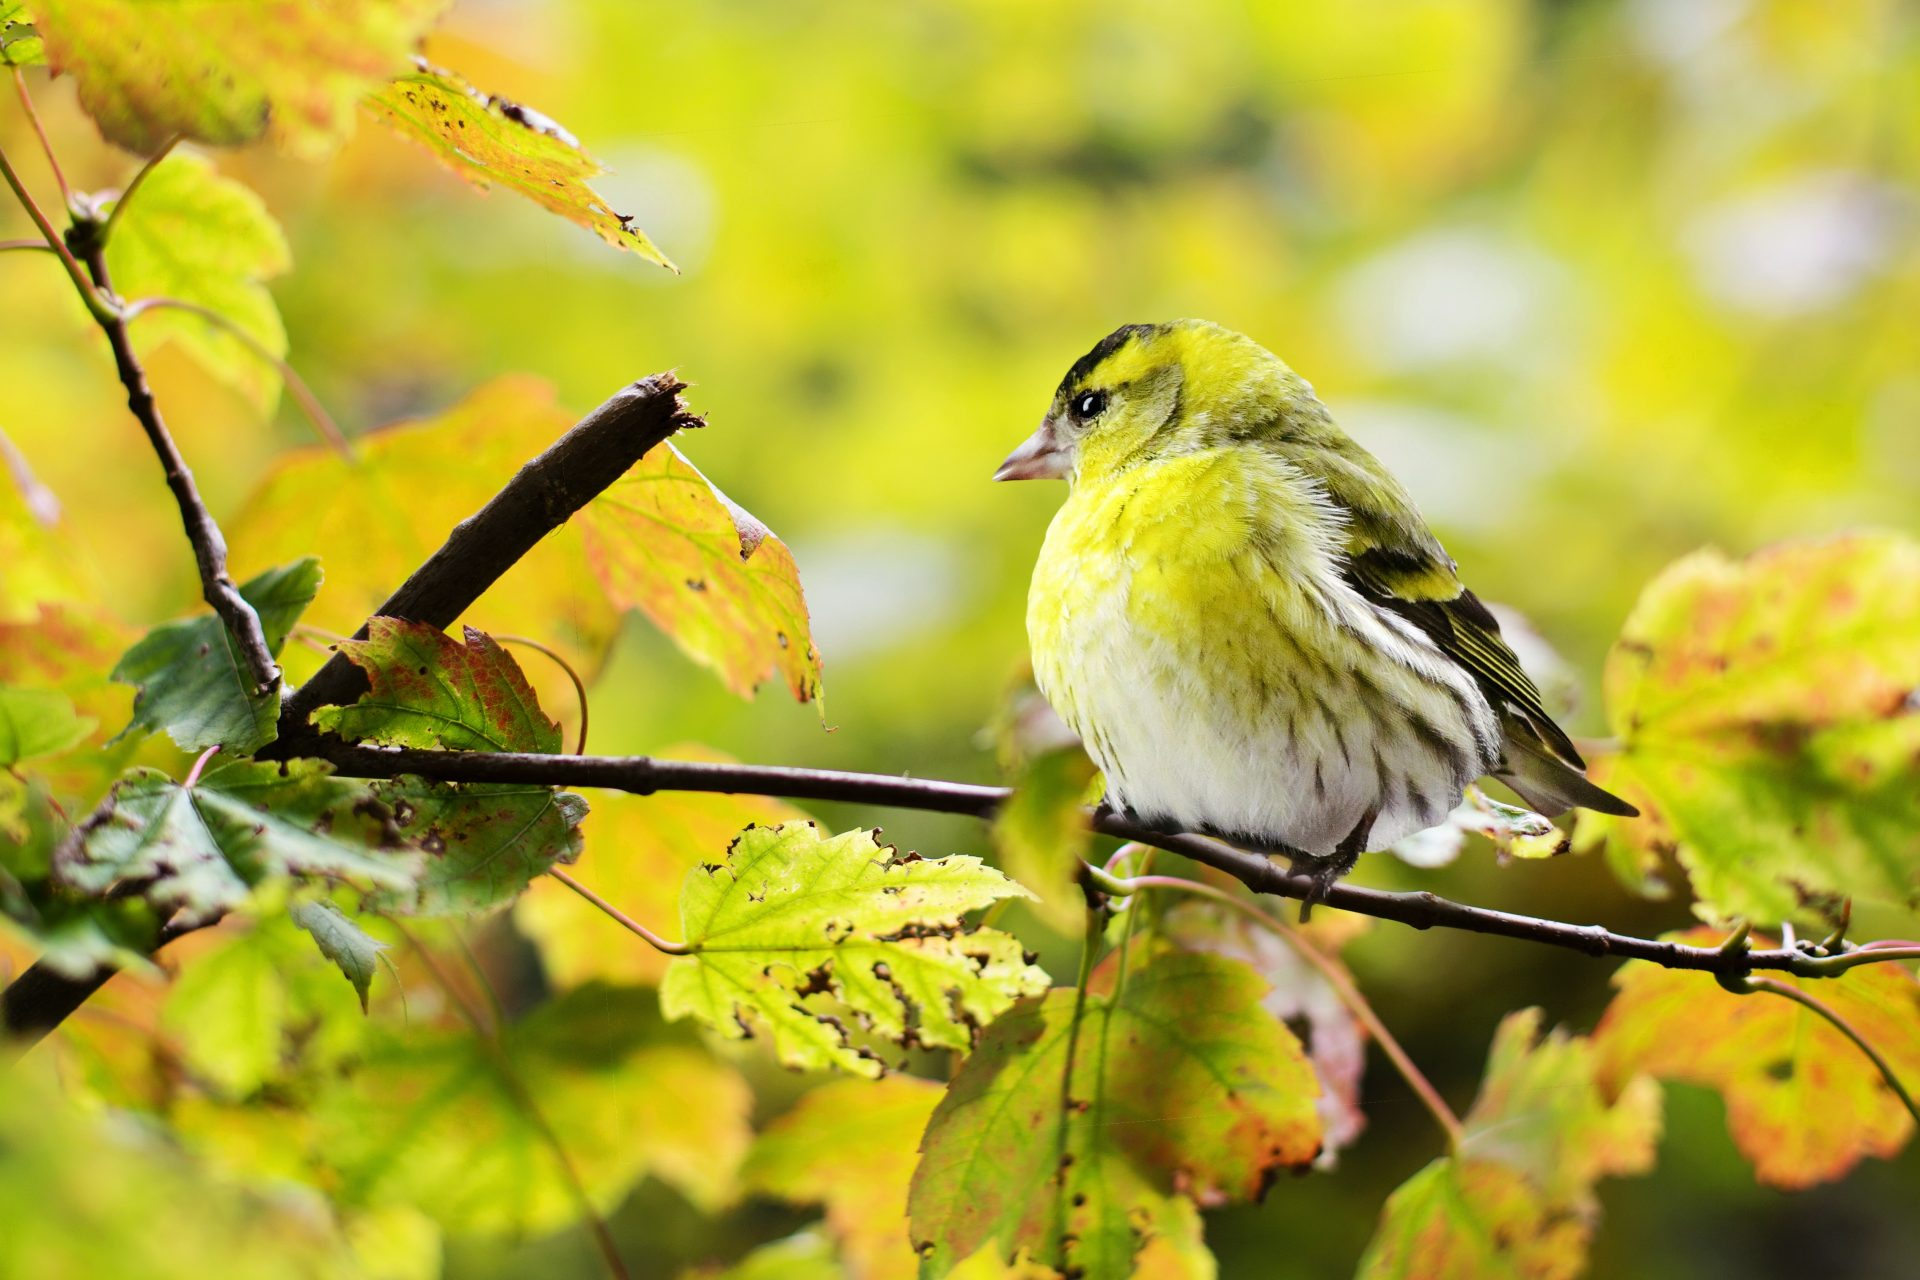 Lovely Yellow Bird Wallpaper With Yellow Leaves - Birds Of Northern Wisconsin , HD Wallpaper & Backgrounds